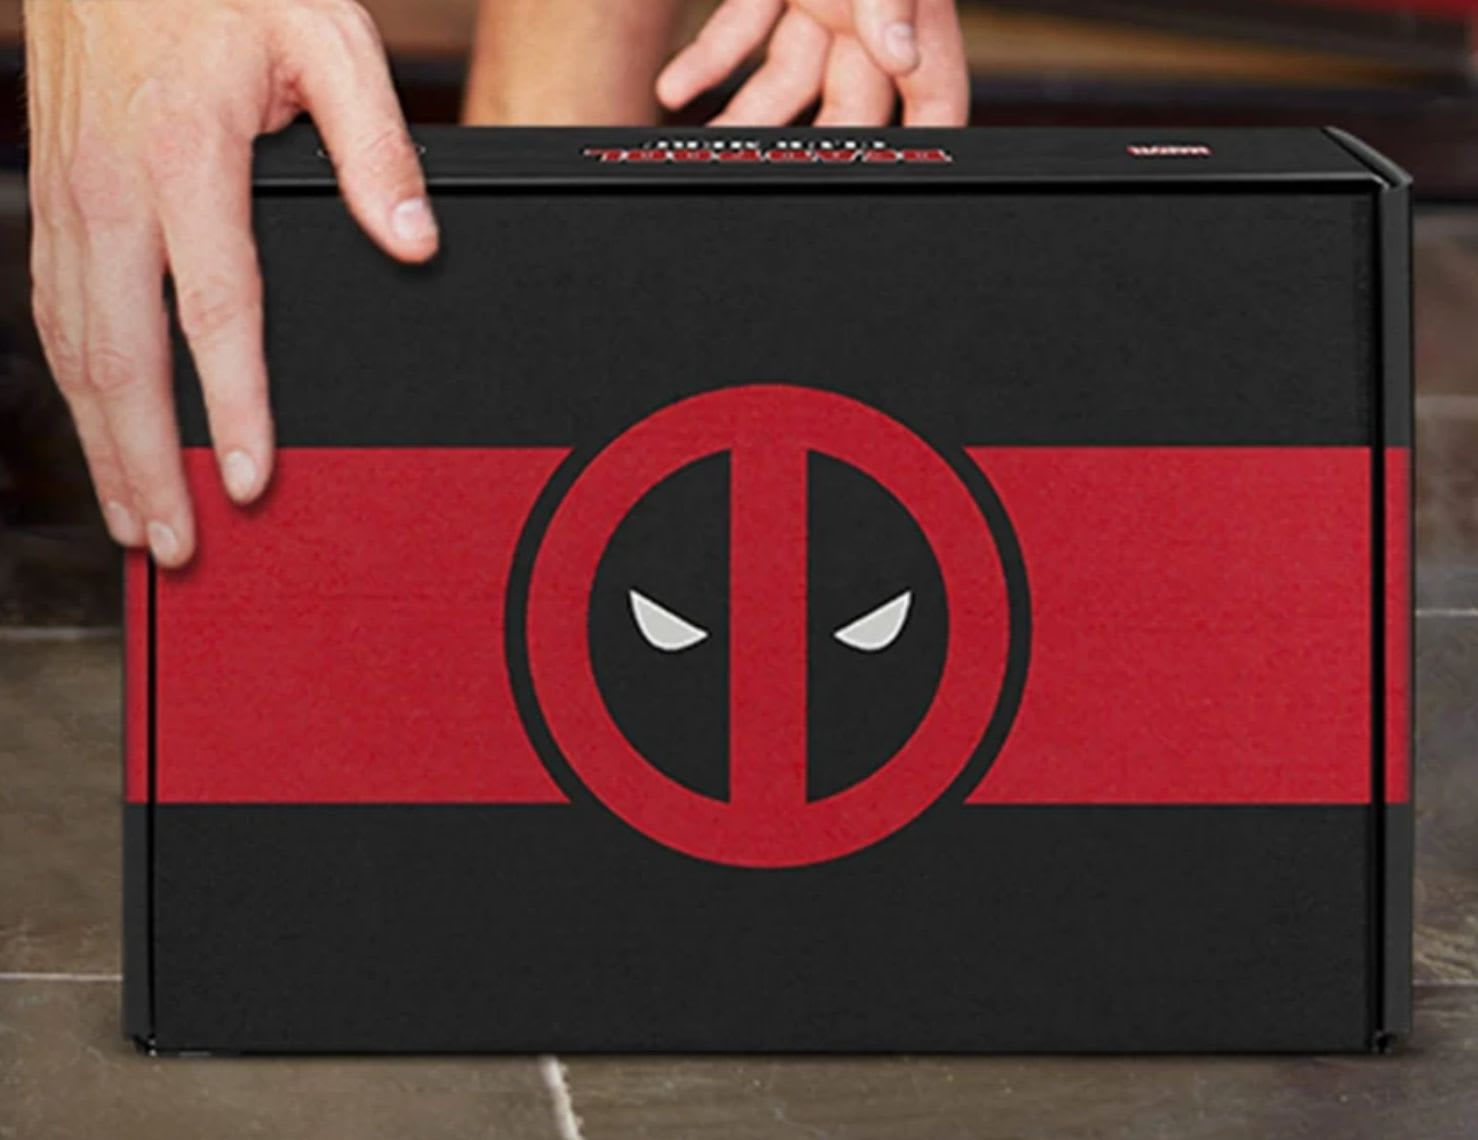 Discover Loot Crate's Official and Original Deadpool merch subscription box on Amazon.